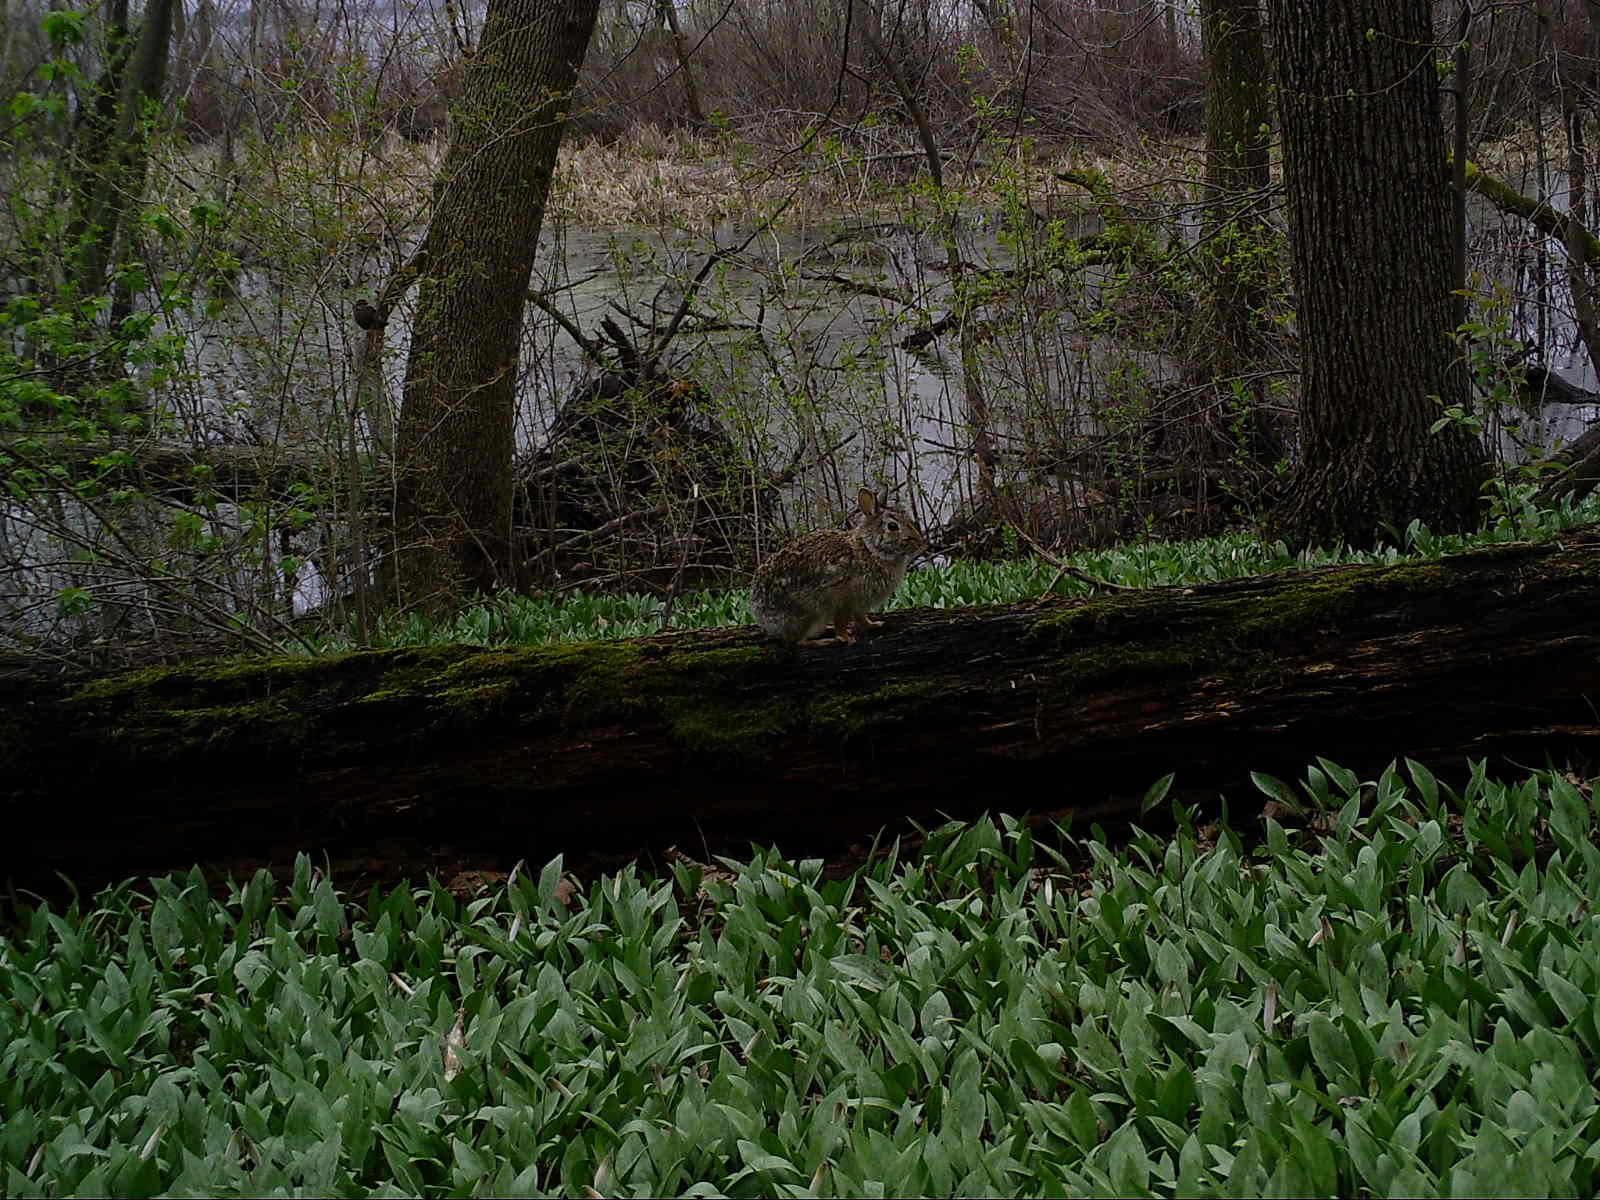 A cottontail rabbit sitting on a log